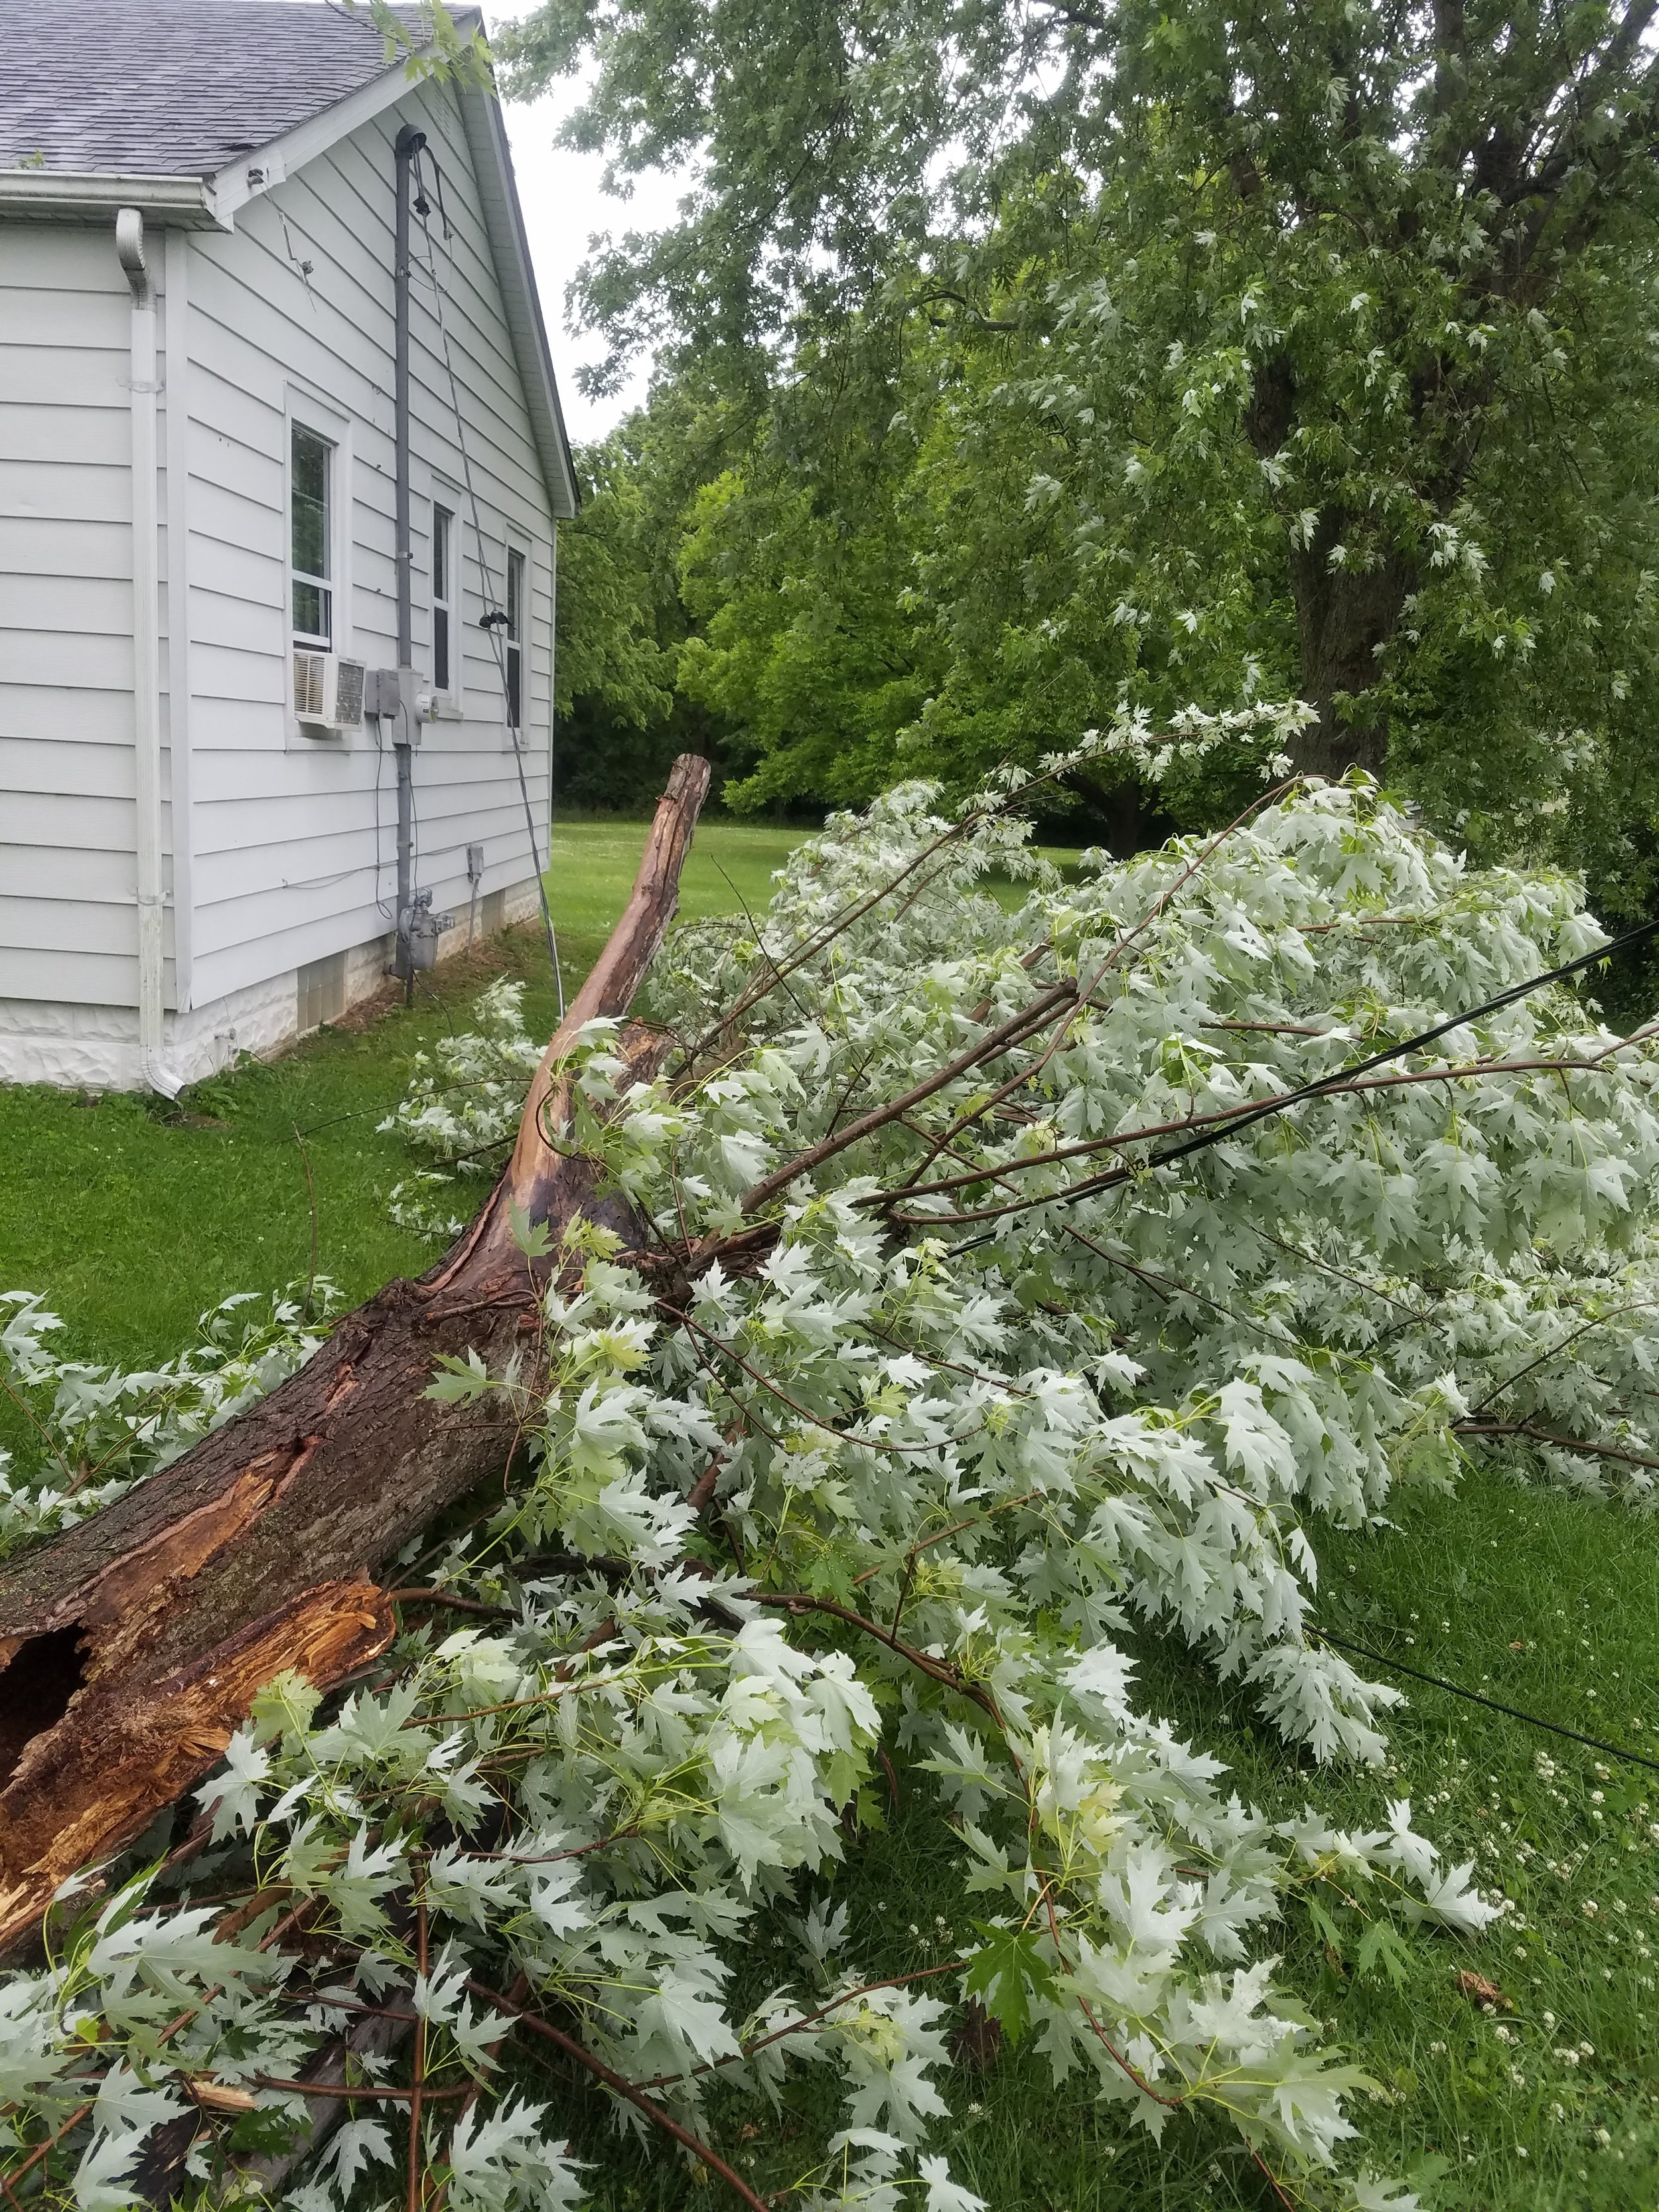 On 05/29/19, East Side Fire responded for several weather related incidents. This tree brought down a service line to a residence.